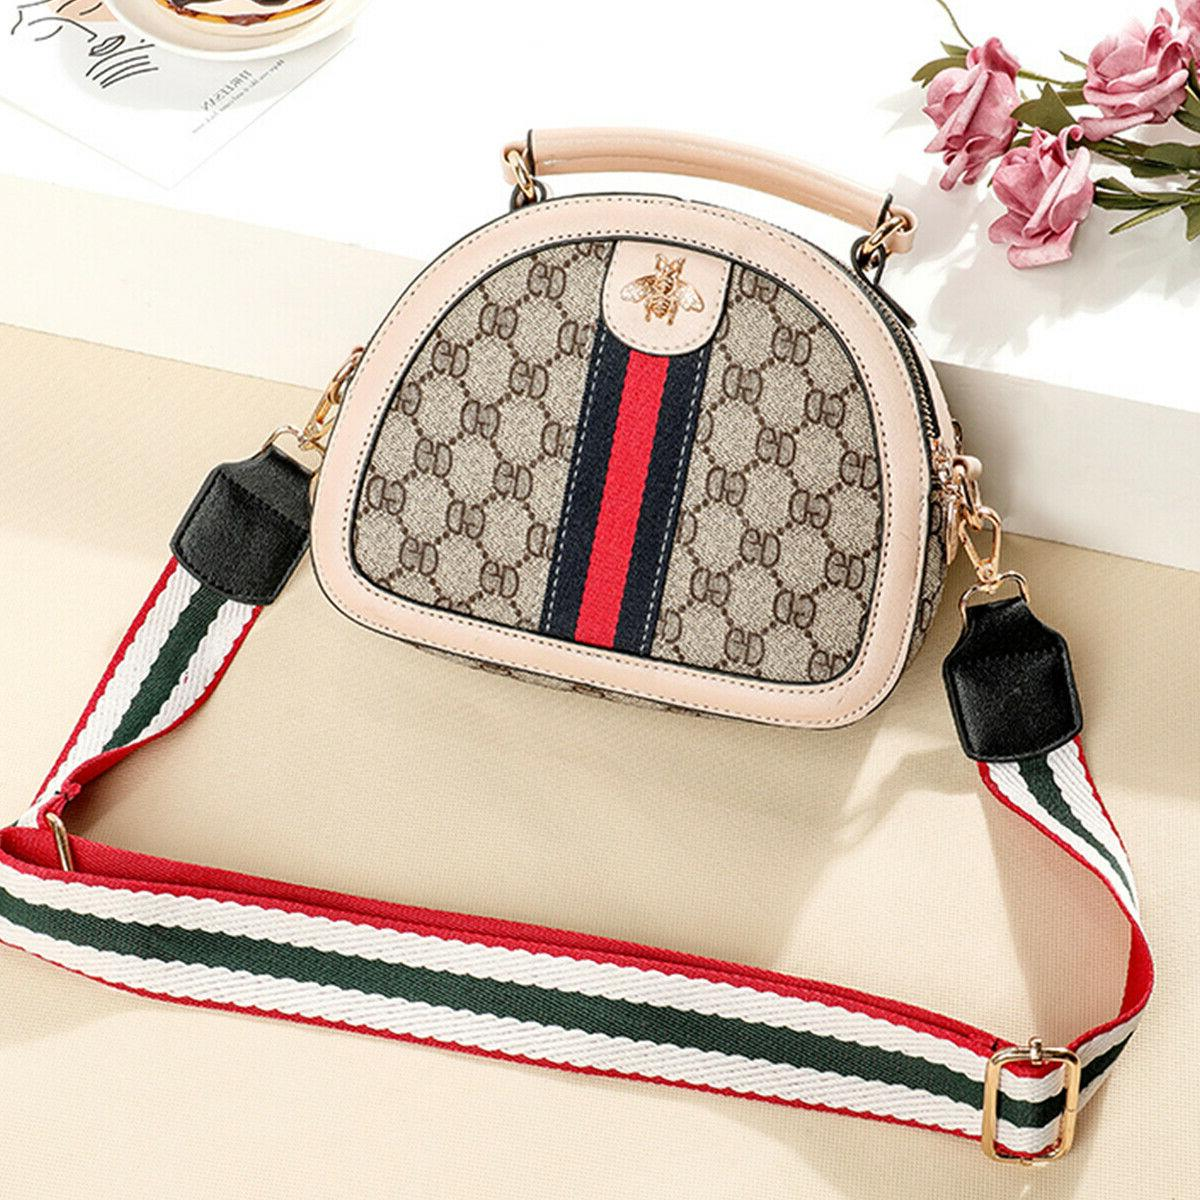 Women Fashion Handbags Small Bags Leather